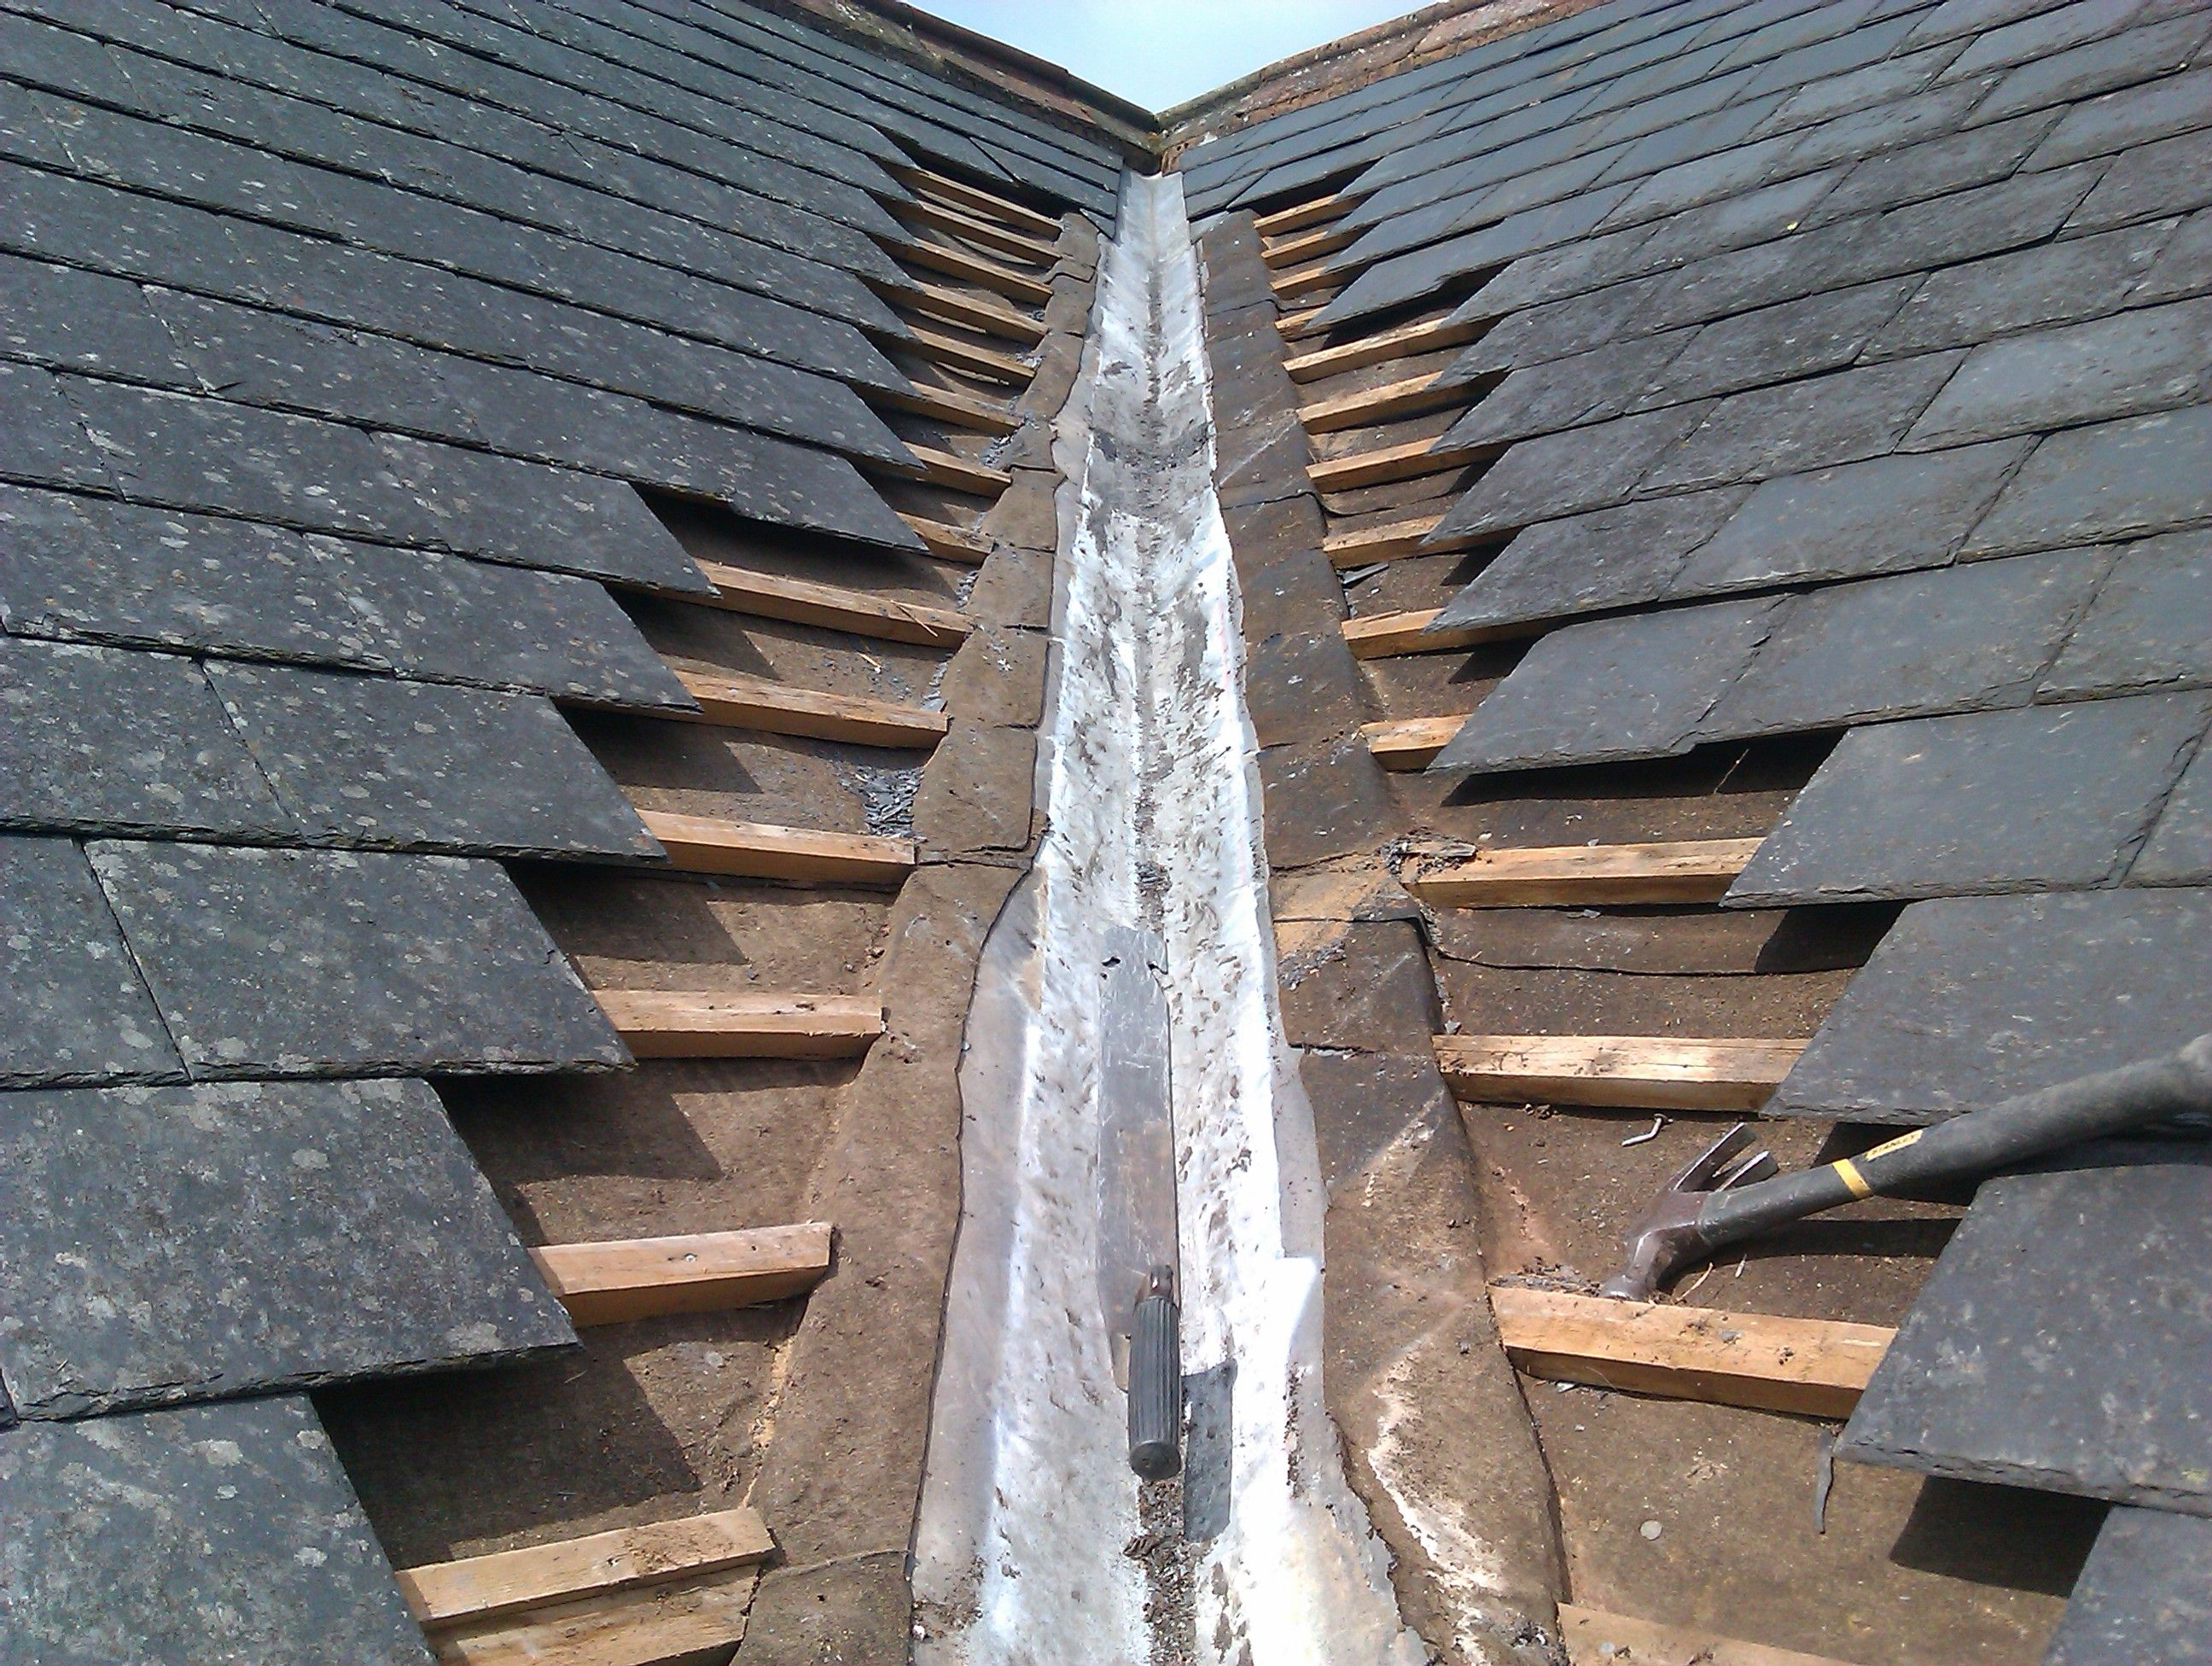 Pin By Asheville Roofing On Roofing Emergency Roof Restoration Roof Repair Fibreglass Roof